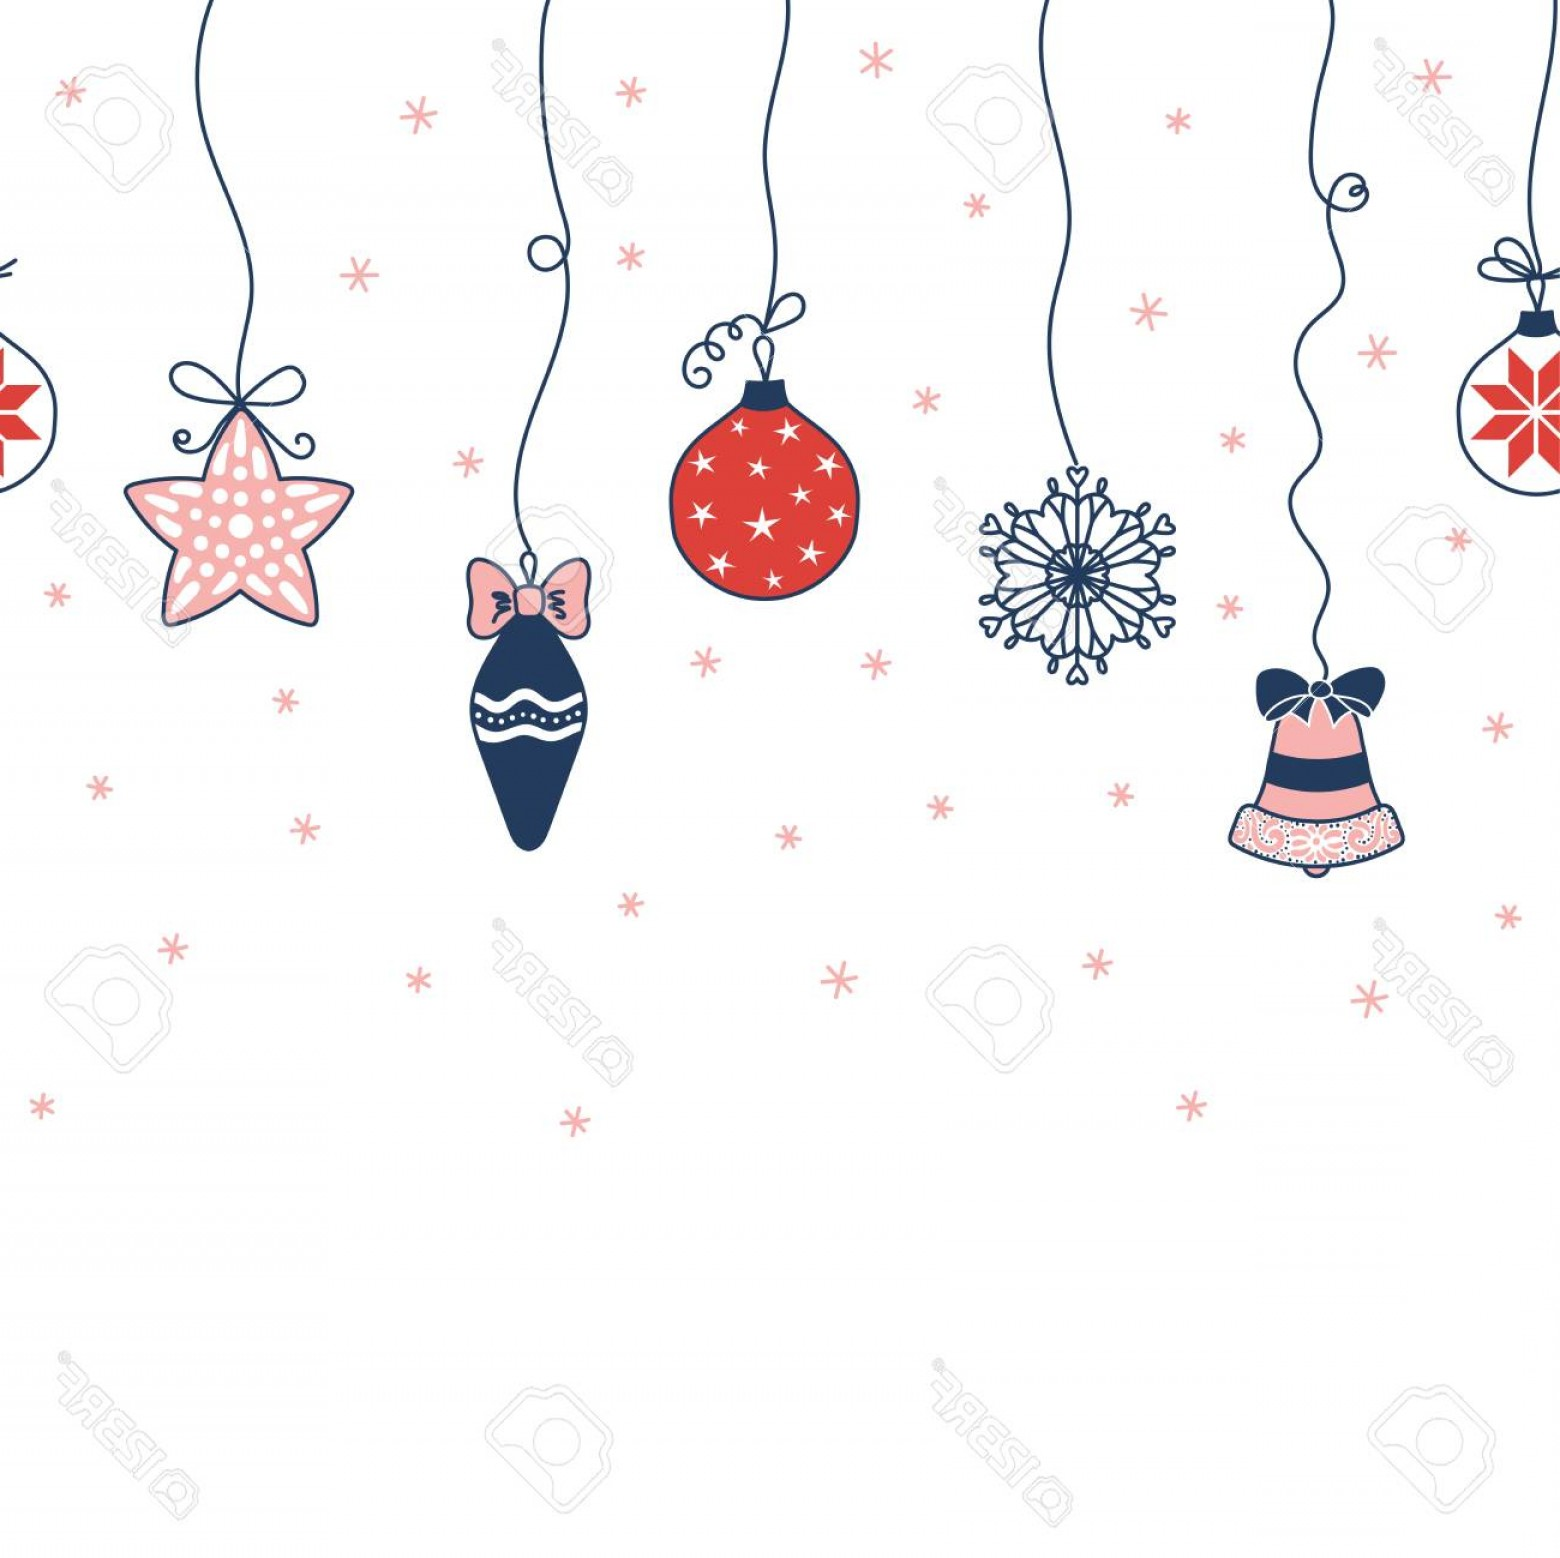 Christmas Horizontal Vector: Photostock Vector Hand Drawn Seamless Horizontal Vector Pattern With Christmas Ornaments Hanging From The Top Snowflak